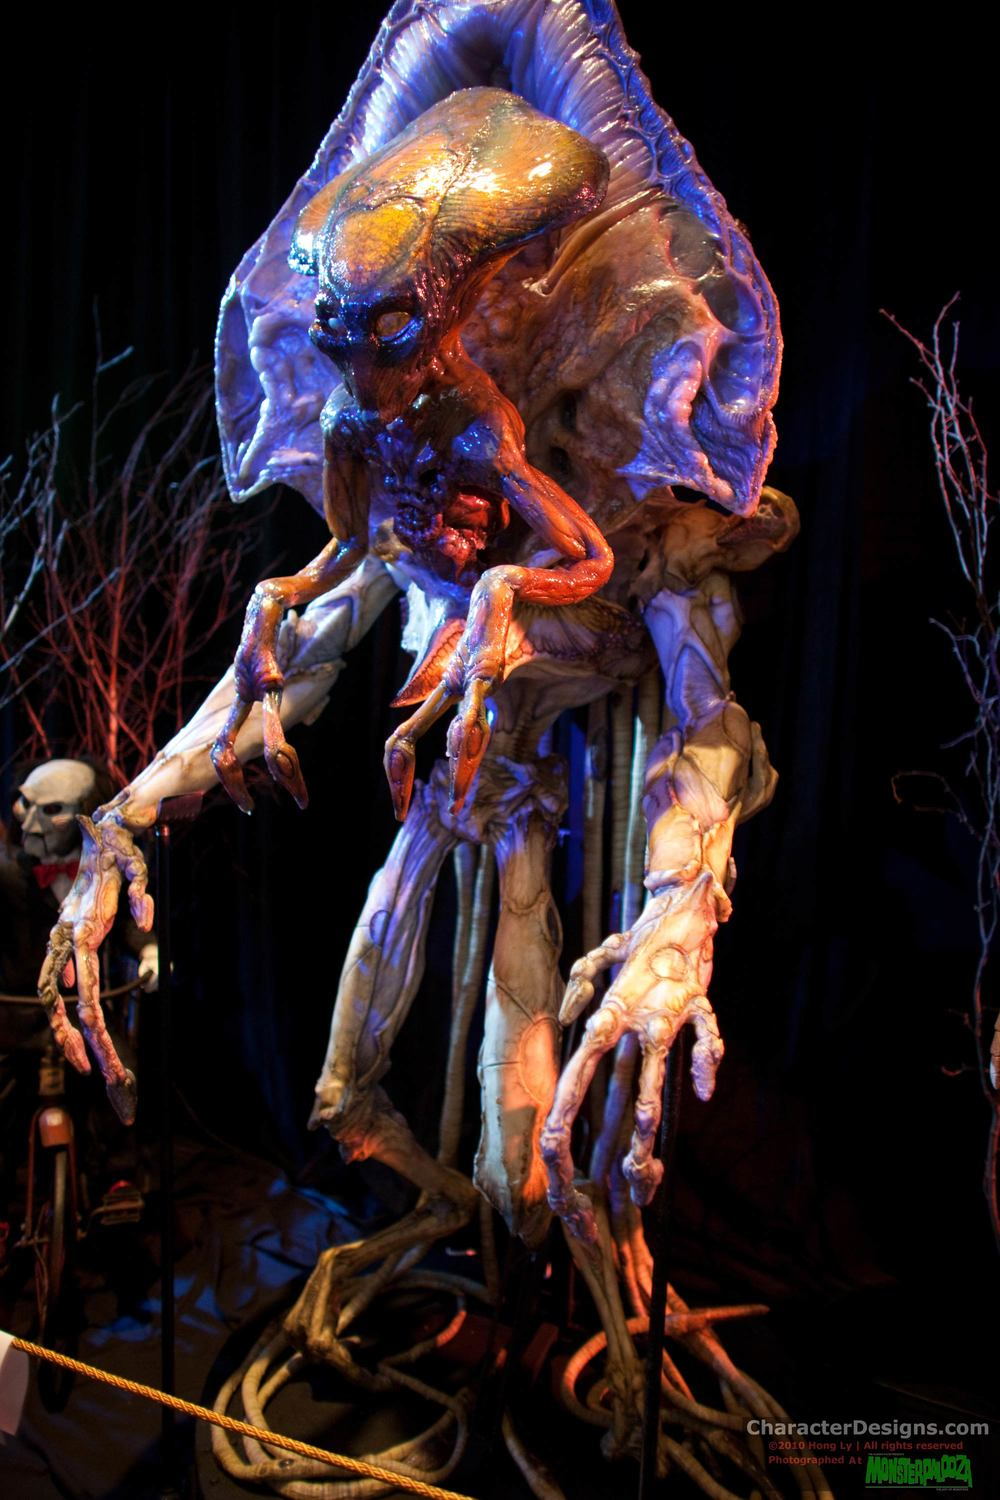 2010_Monsterpalooza_426.jpg